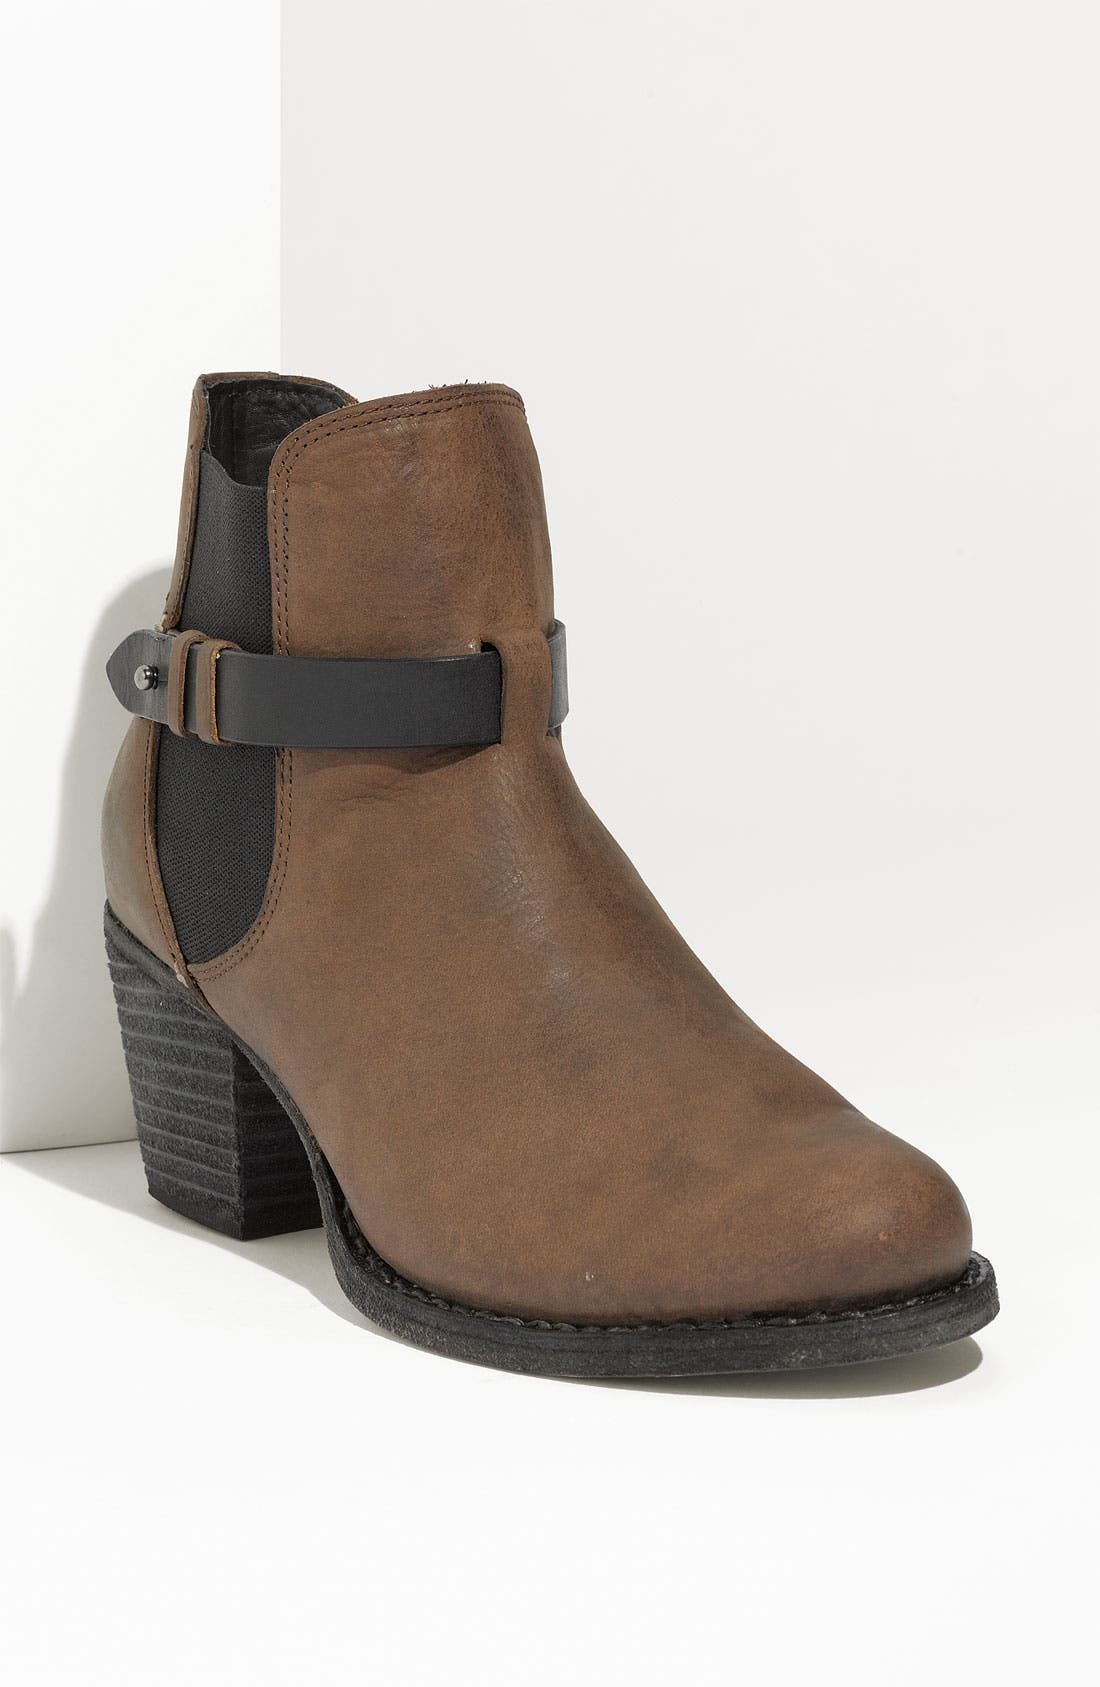 Alternate Image 1 Selected - rag & bone 'Durham' Boot